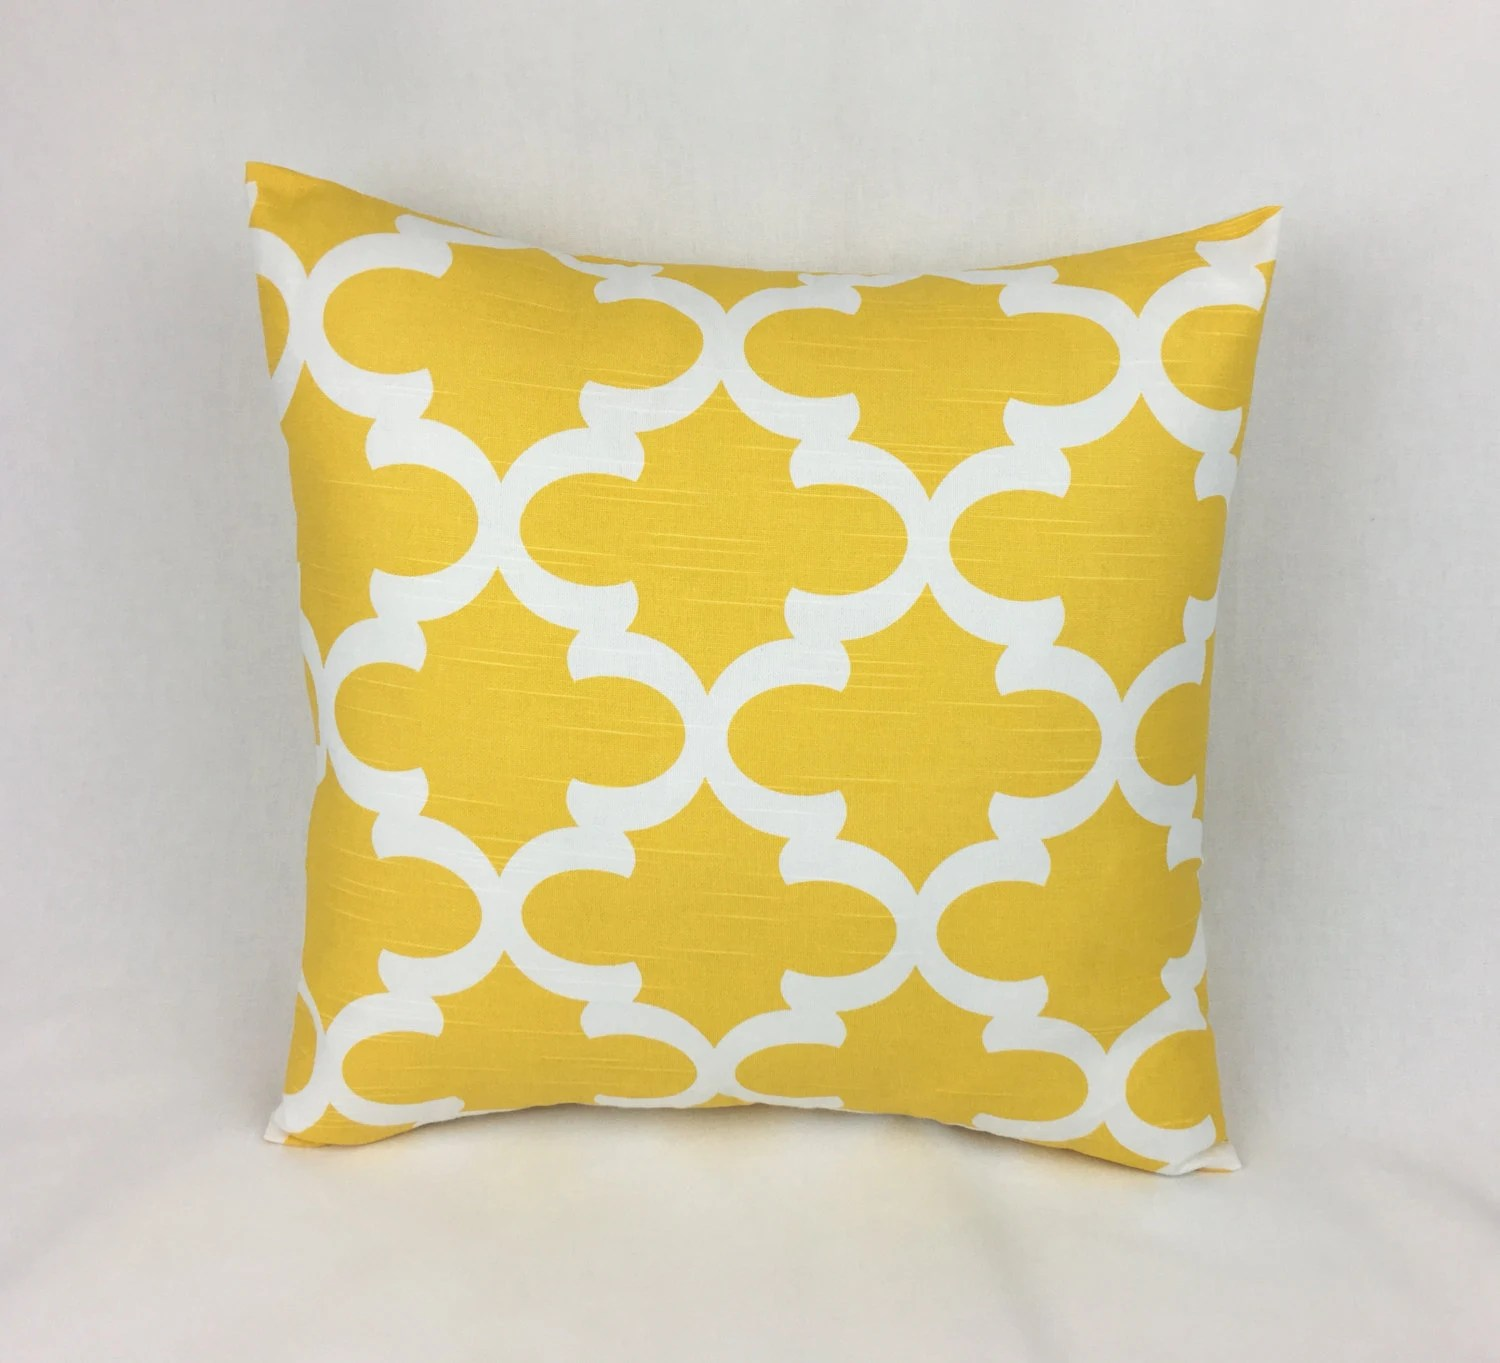 26x26 Pillow Covers